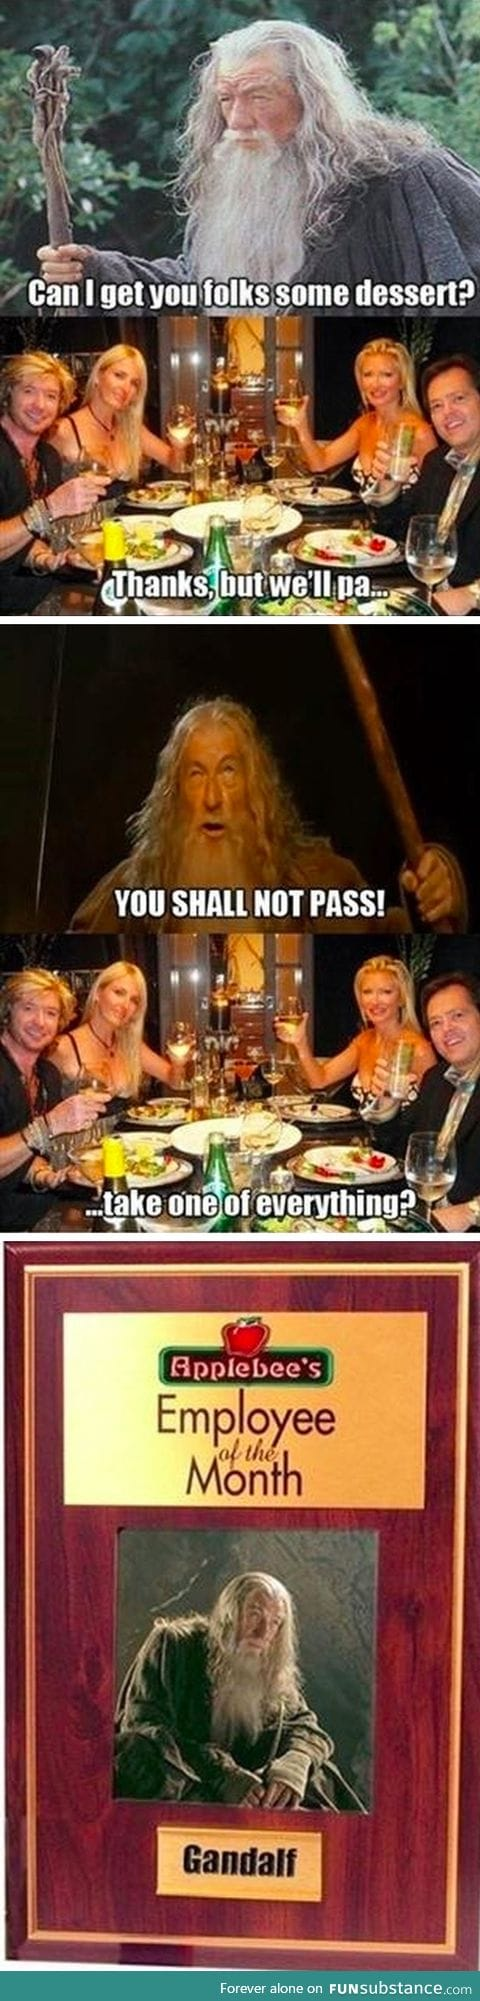 Gandalf, employee of the month